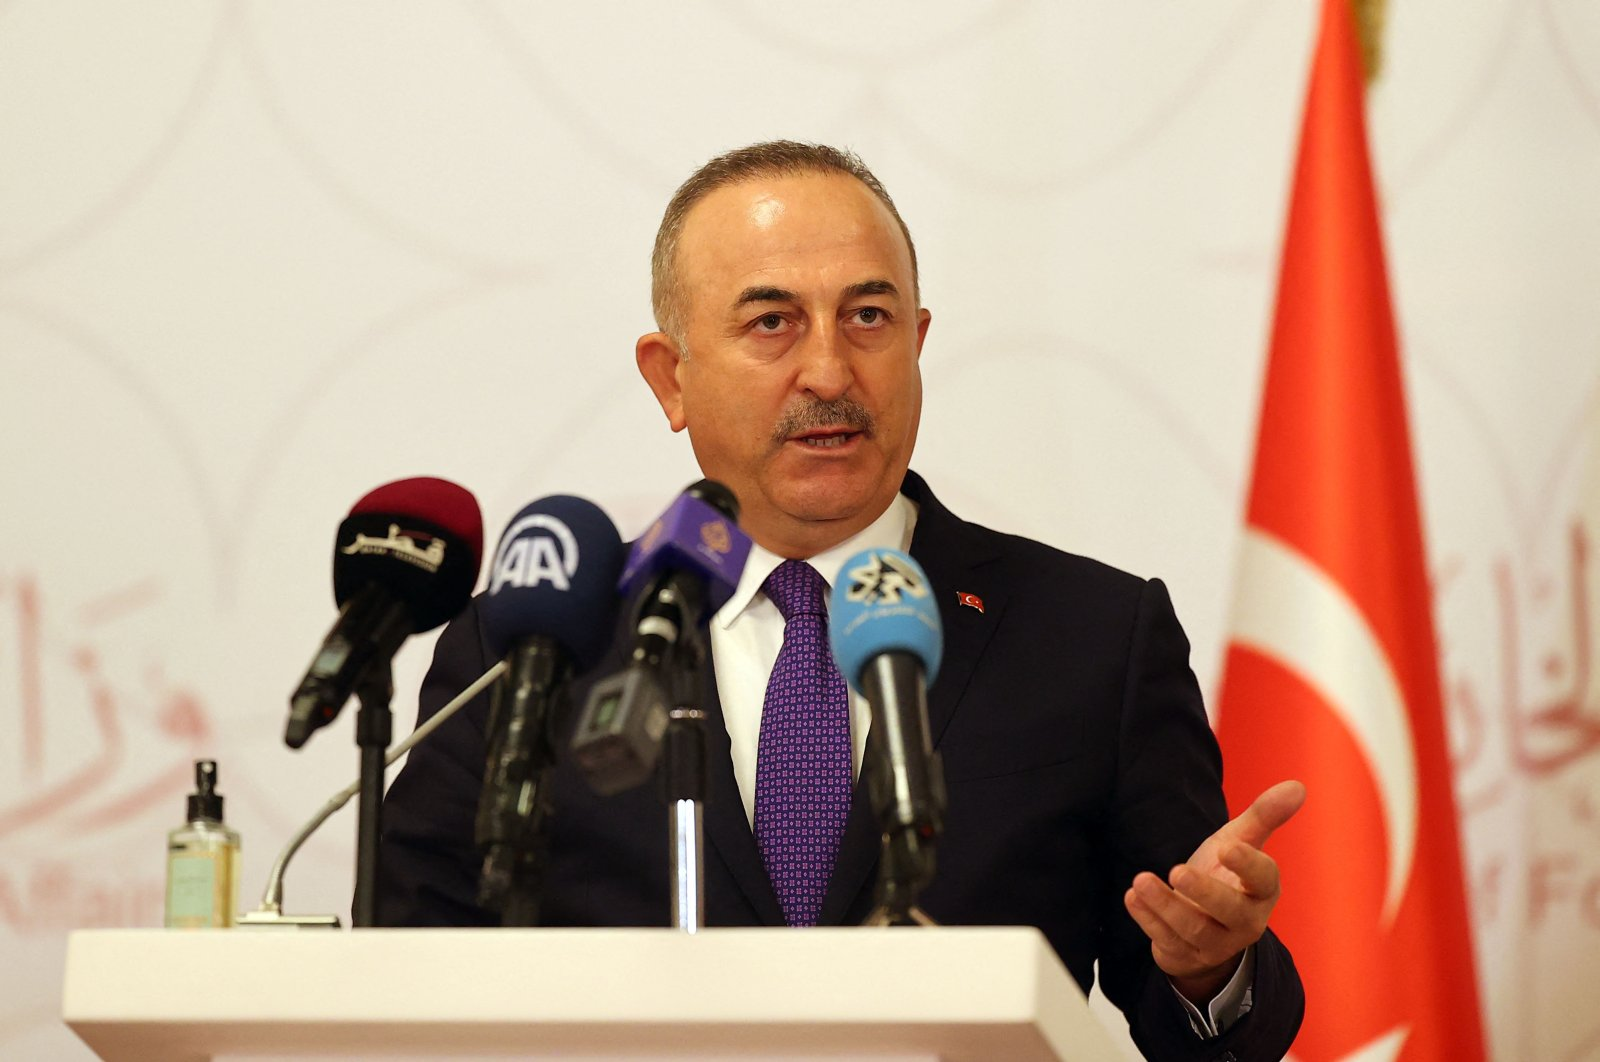 Turkish Foreign Minister Mevlüt Çavuşoğlu attends a joint press conference following a tripartite meeting with his Russian and Qatari counterparts, in Doha, Qatar, March 11, 2021. (Photo by KARIM JAAFAR / AFP)